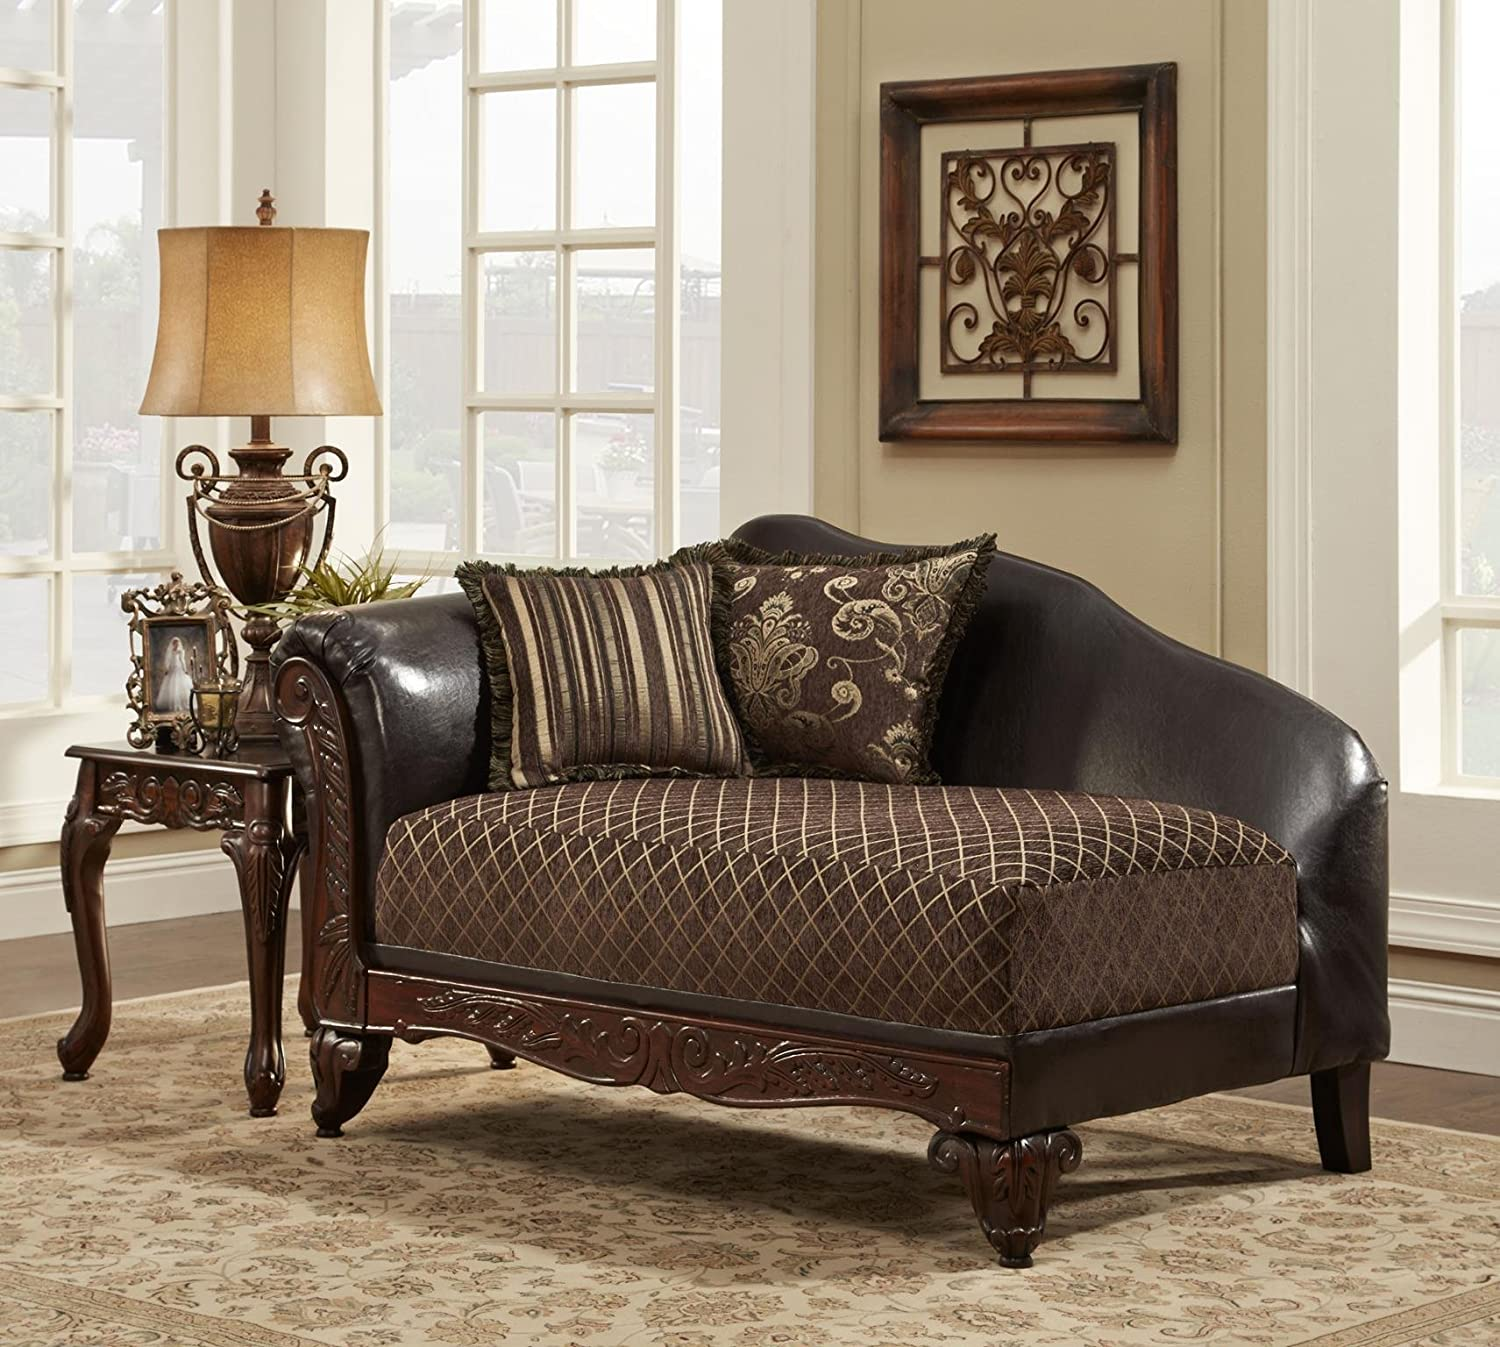 Amazon.com: Chelsea Home Furniture Amelia Chaise, Sienna Brown/Bi Cast  Brown: Kitchen U0026 Dining